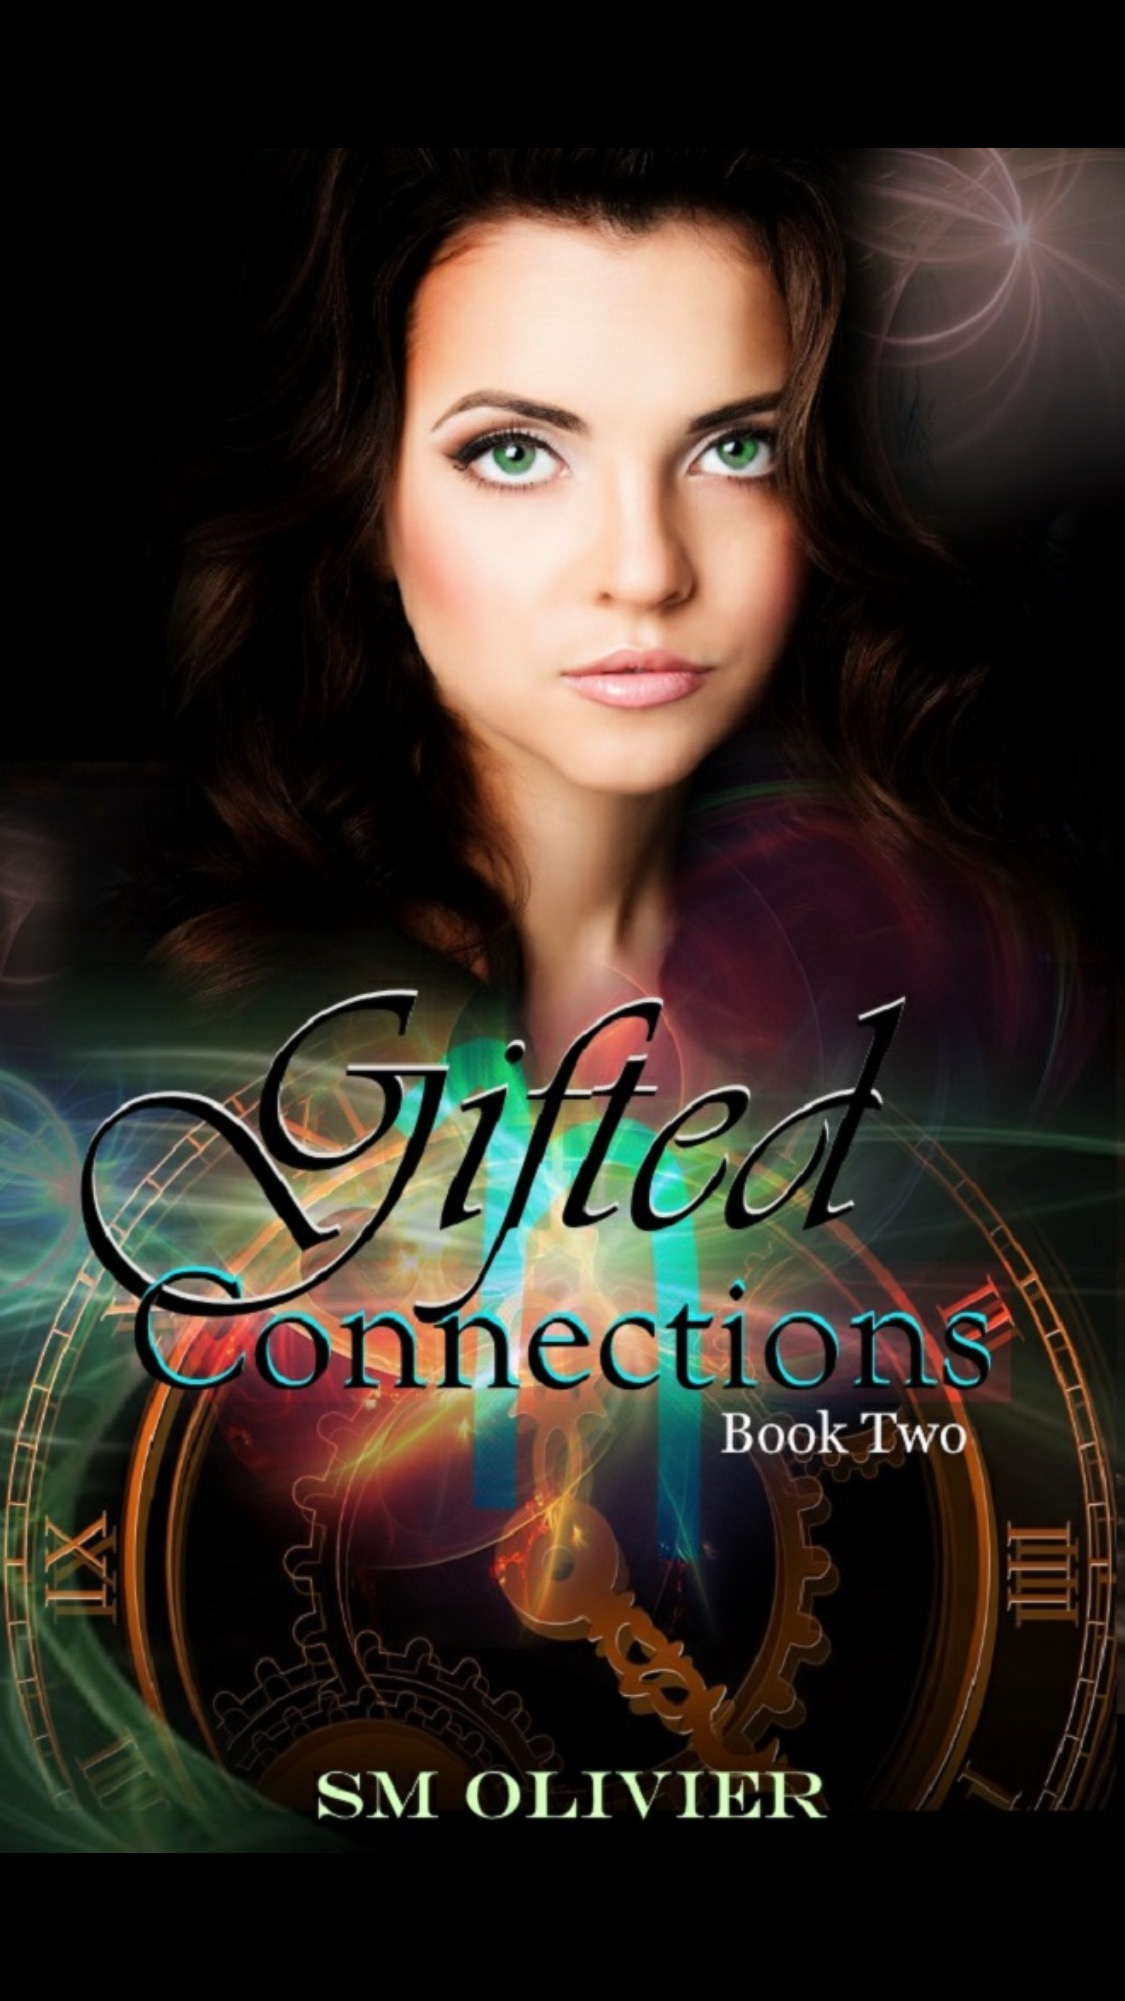 Gifted Connections Books 2 by SM Oliver - A Book Review #Whychoose #RH #UrbanFantasy #ReverseHarem #Academy